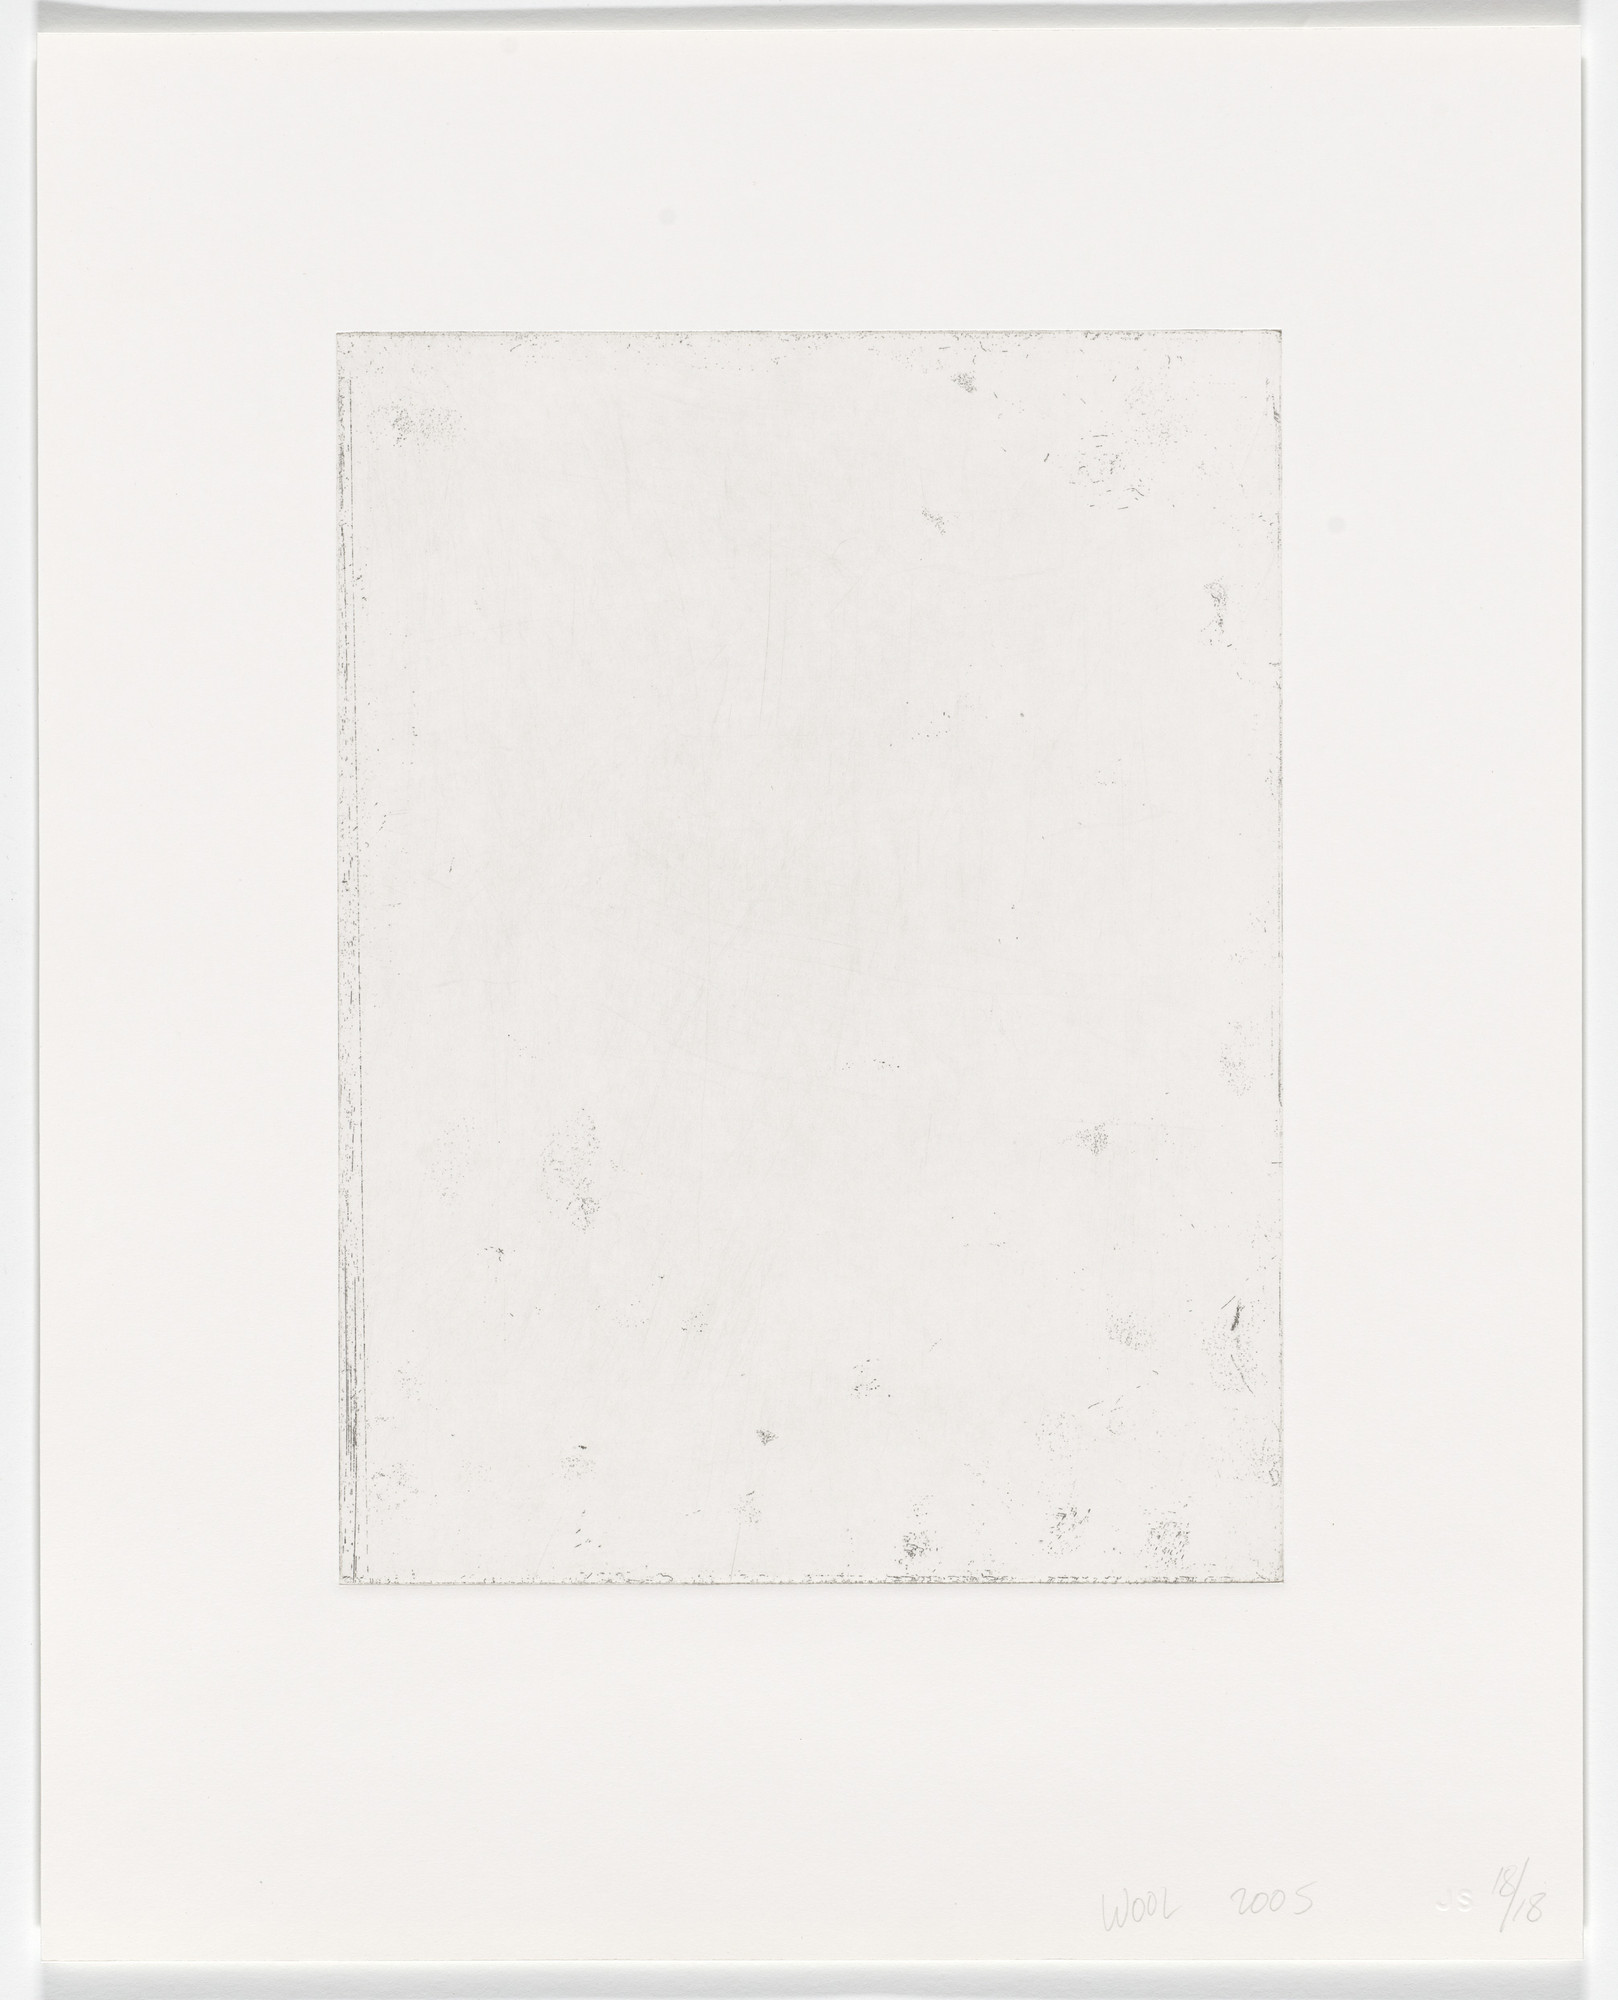 Christopher Wool. Untitled from 6+4. 2005